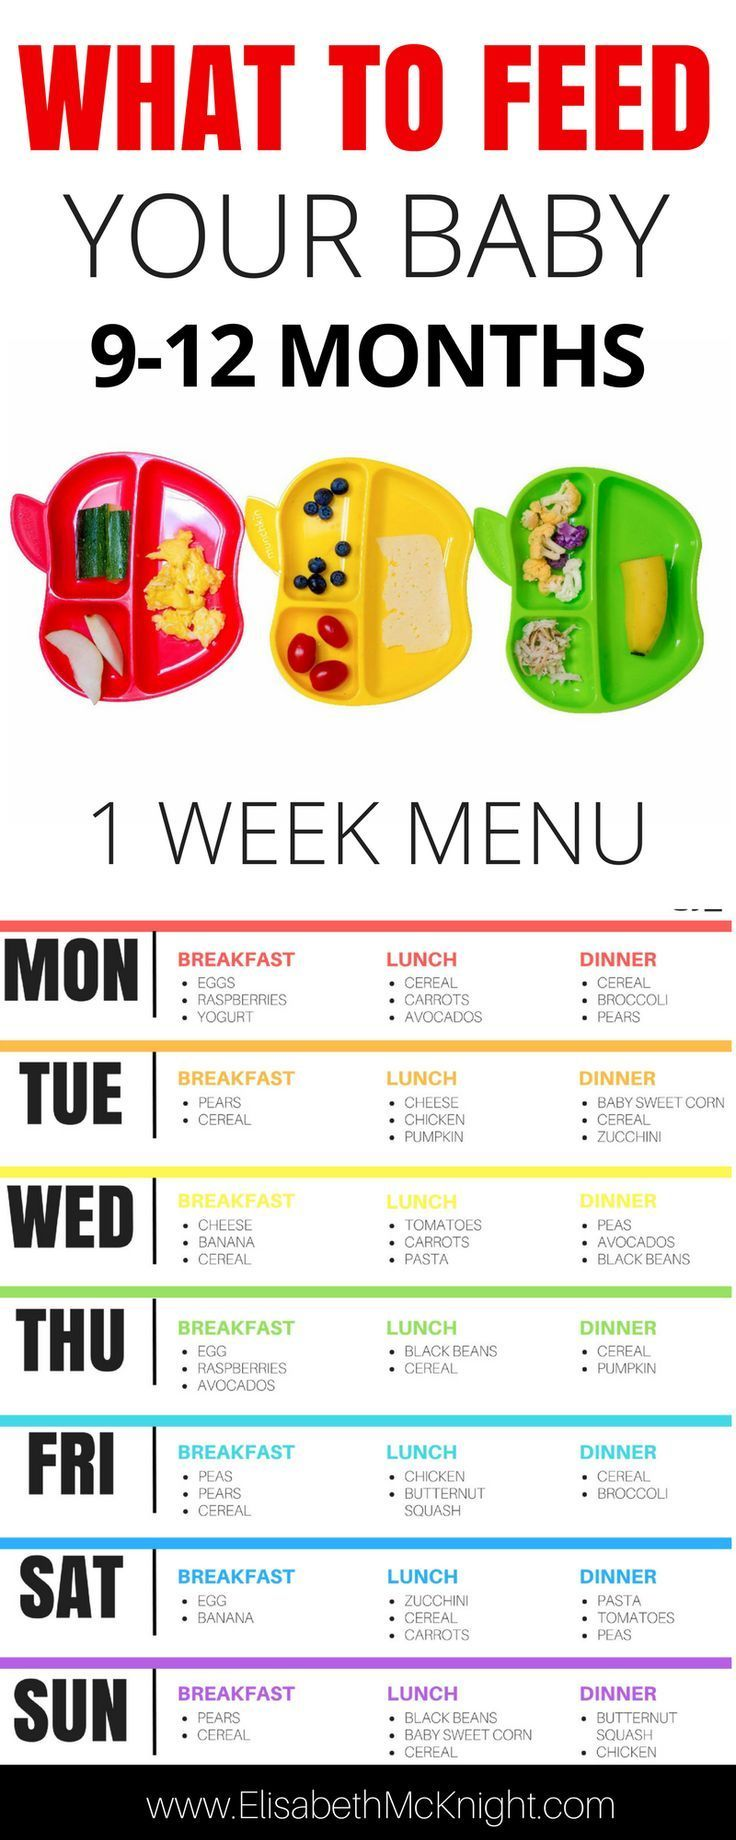 wonder what to feed your baby? sample baby menu and feeding chart for 9 - 12 months